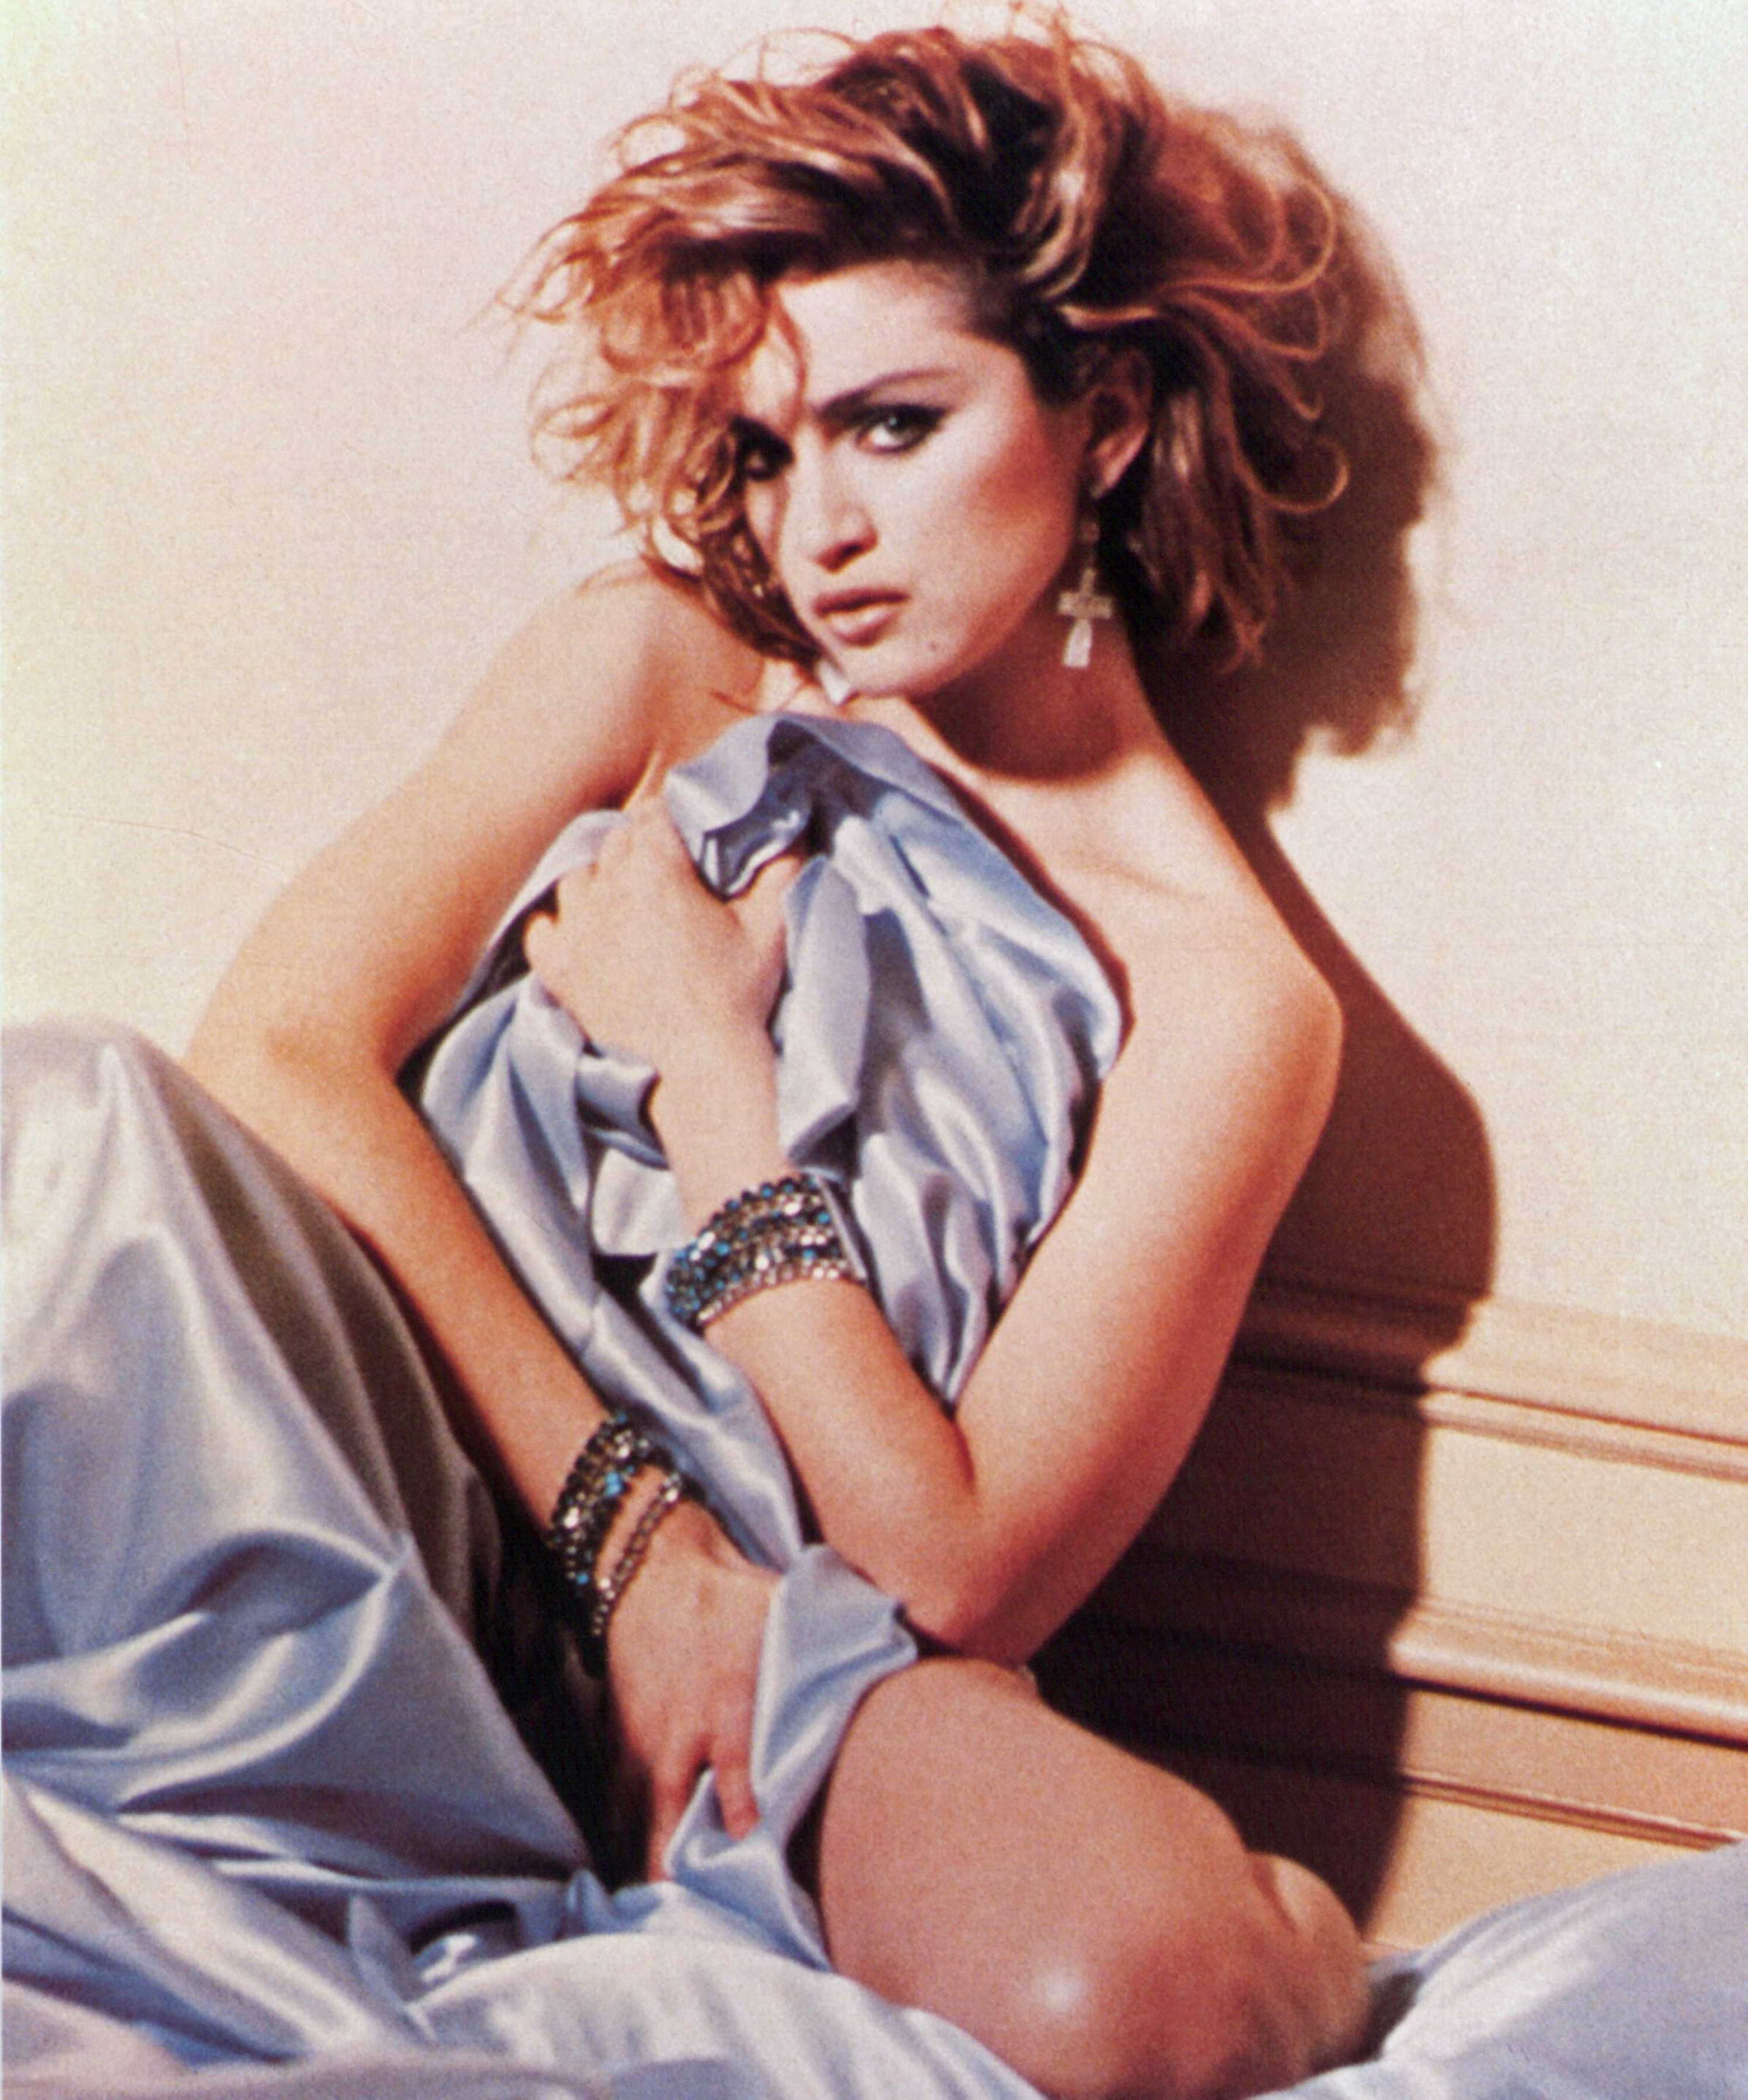 https://squaremadonna.files.wordpress.com/2013/10/madonna_like_a_virgin_album_cover_session_by_meisel_1984_16.jpg